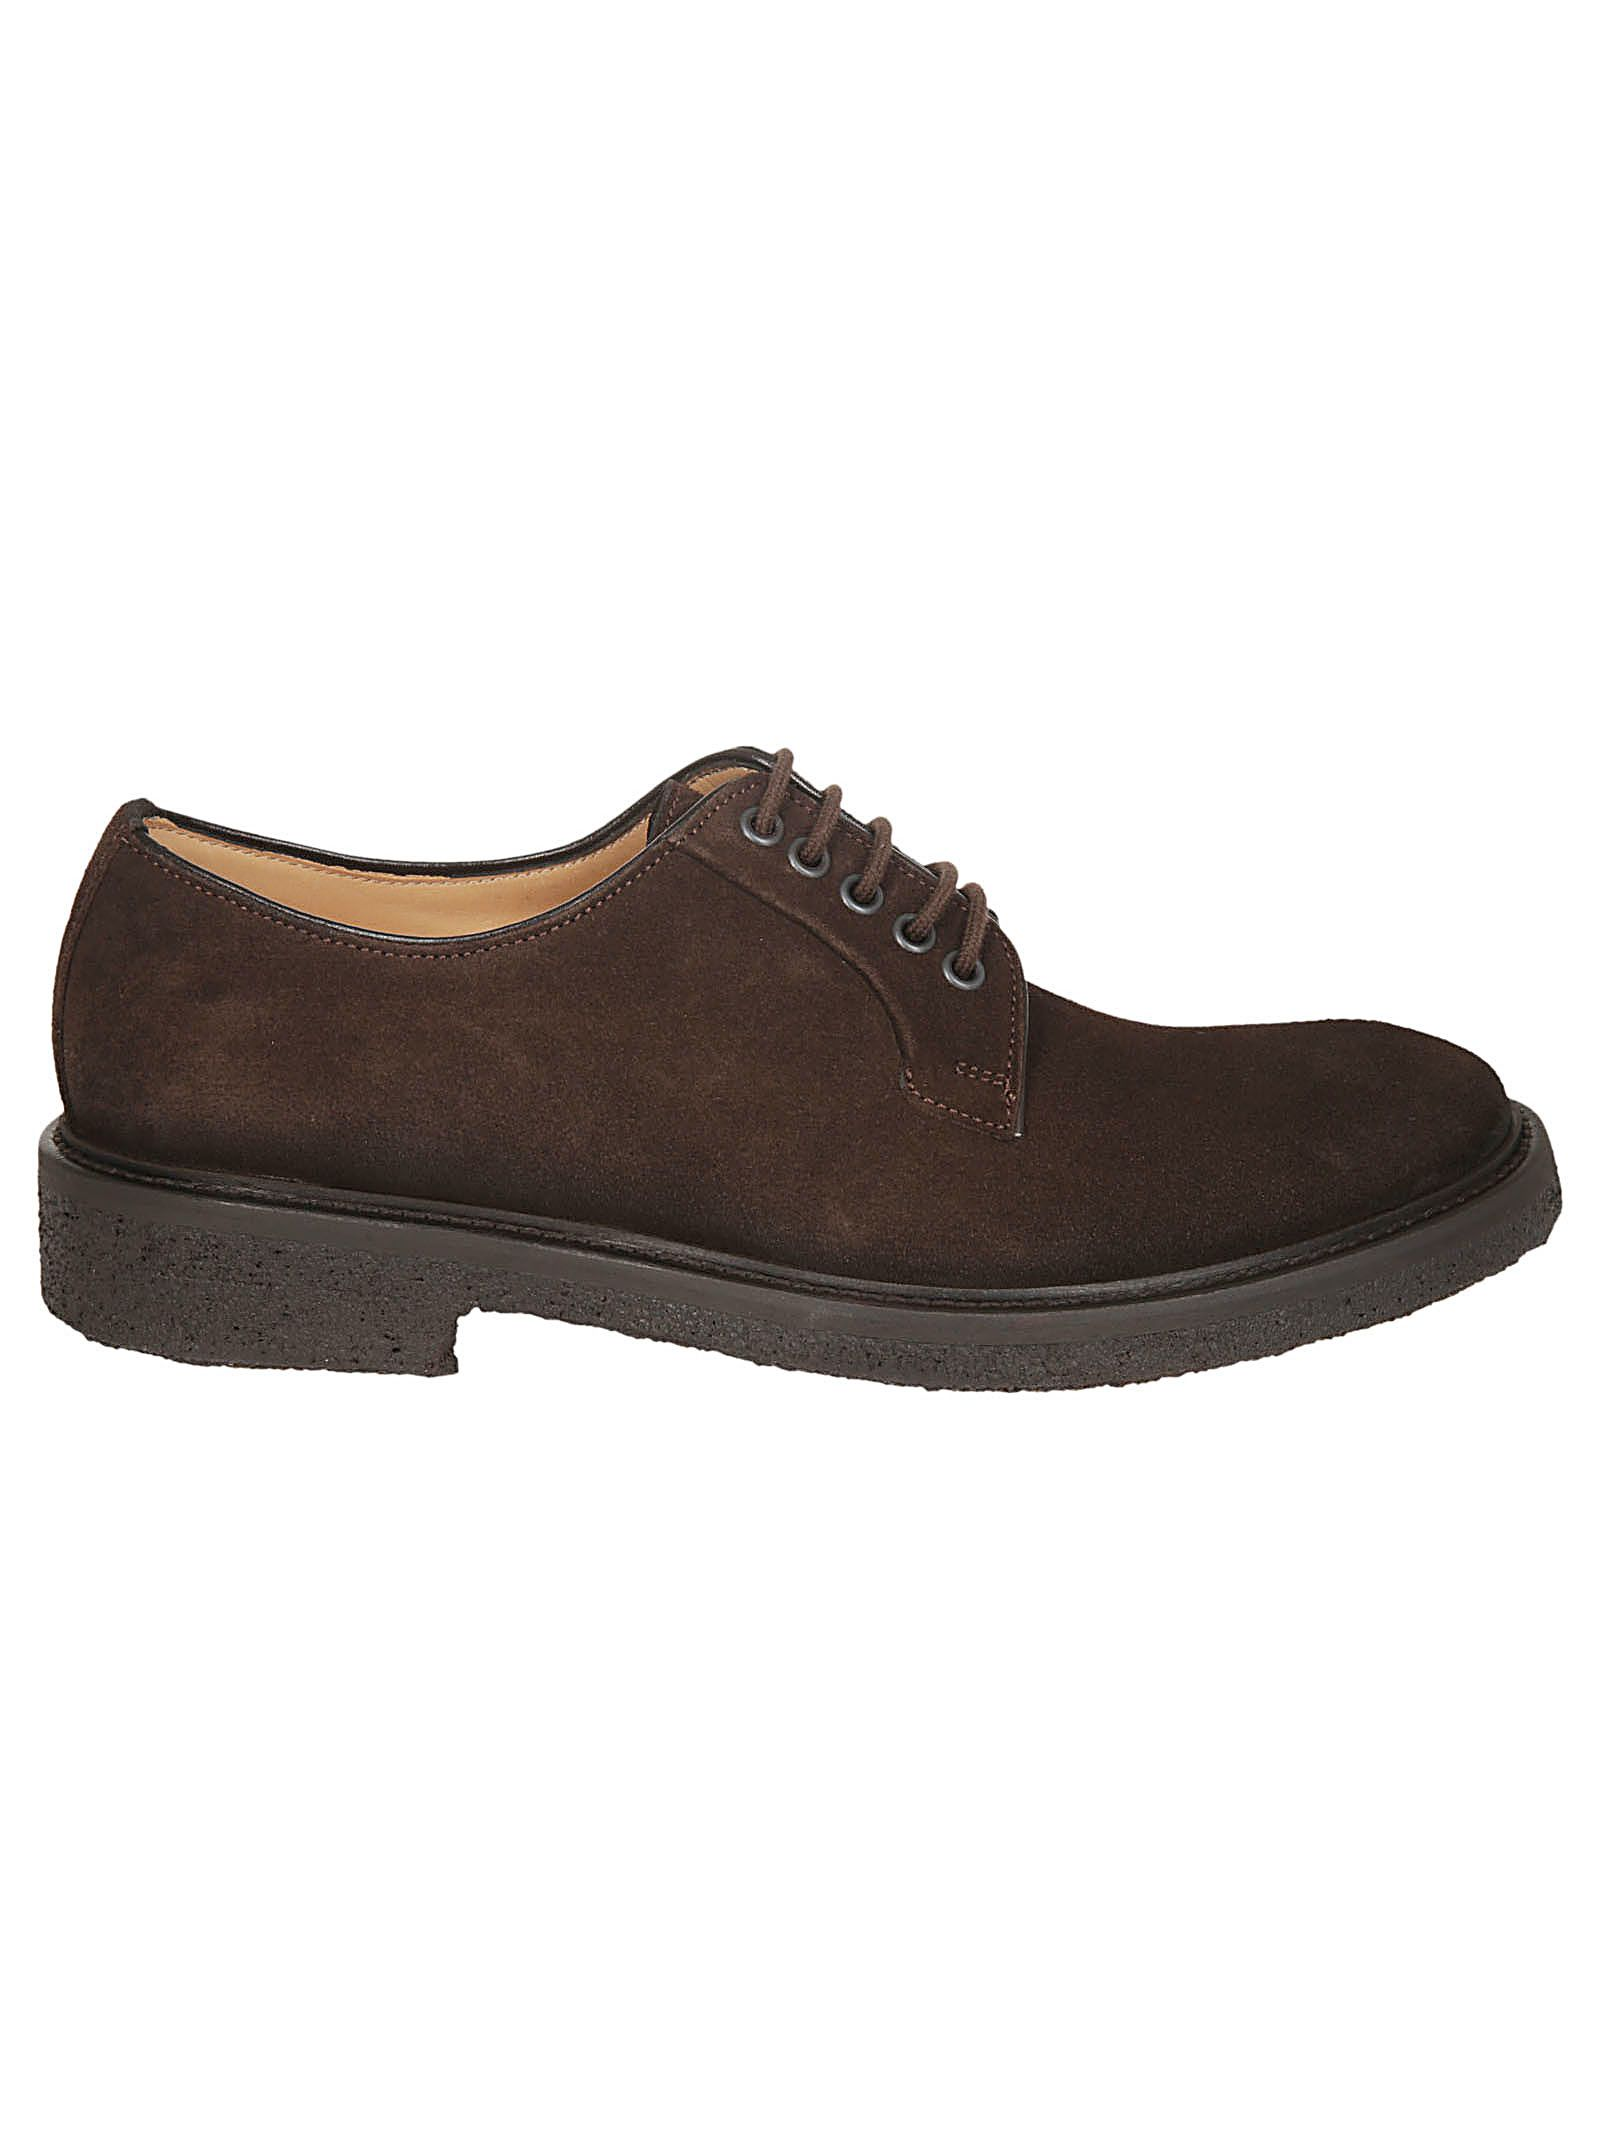 SEBOY'S Classic Derby Shoes in Moro